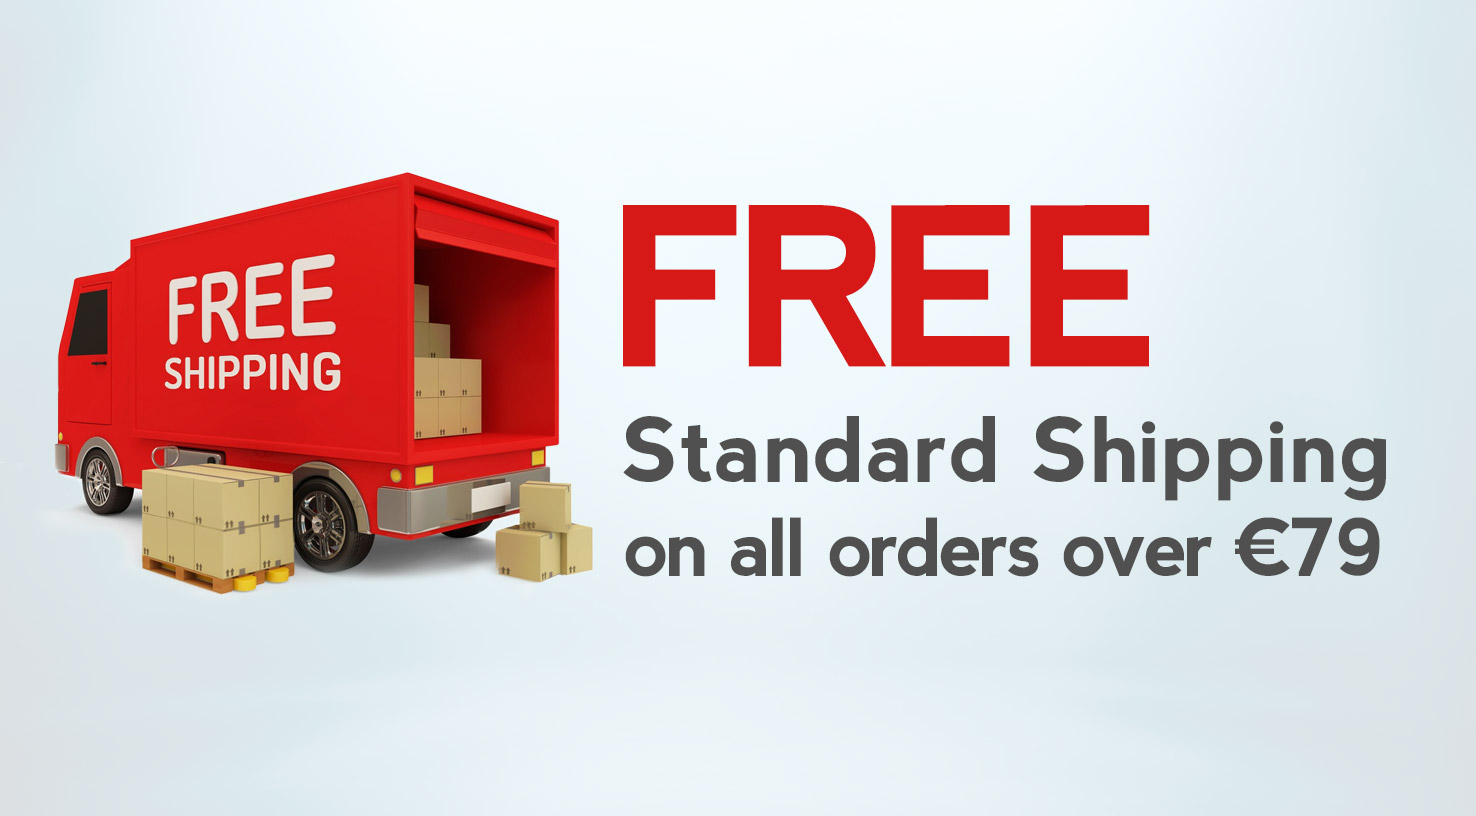 FREE Standard Shipping on orders over €49